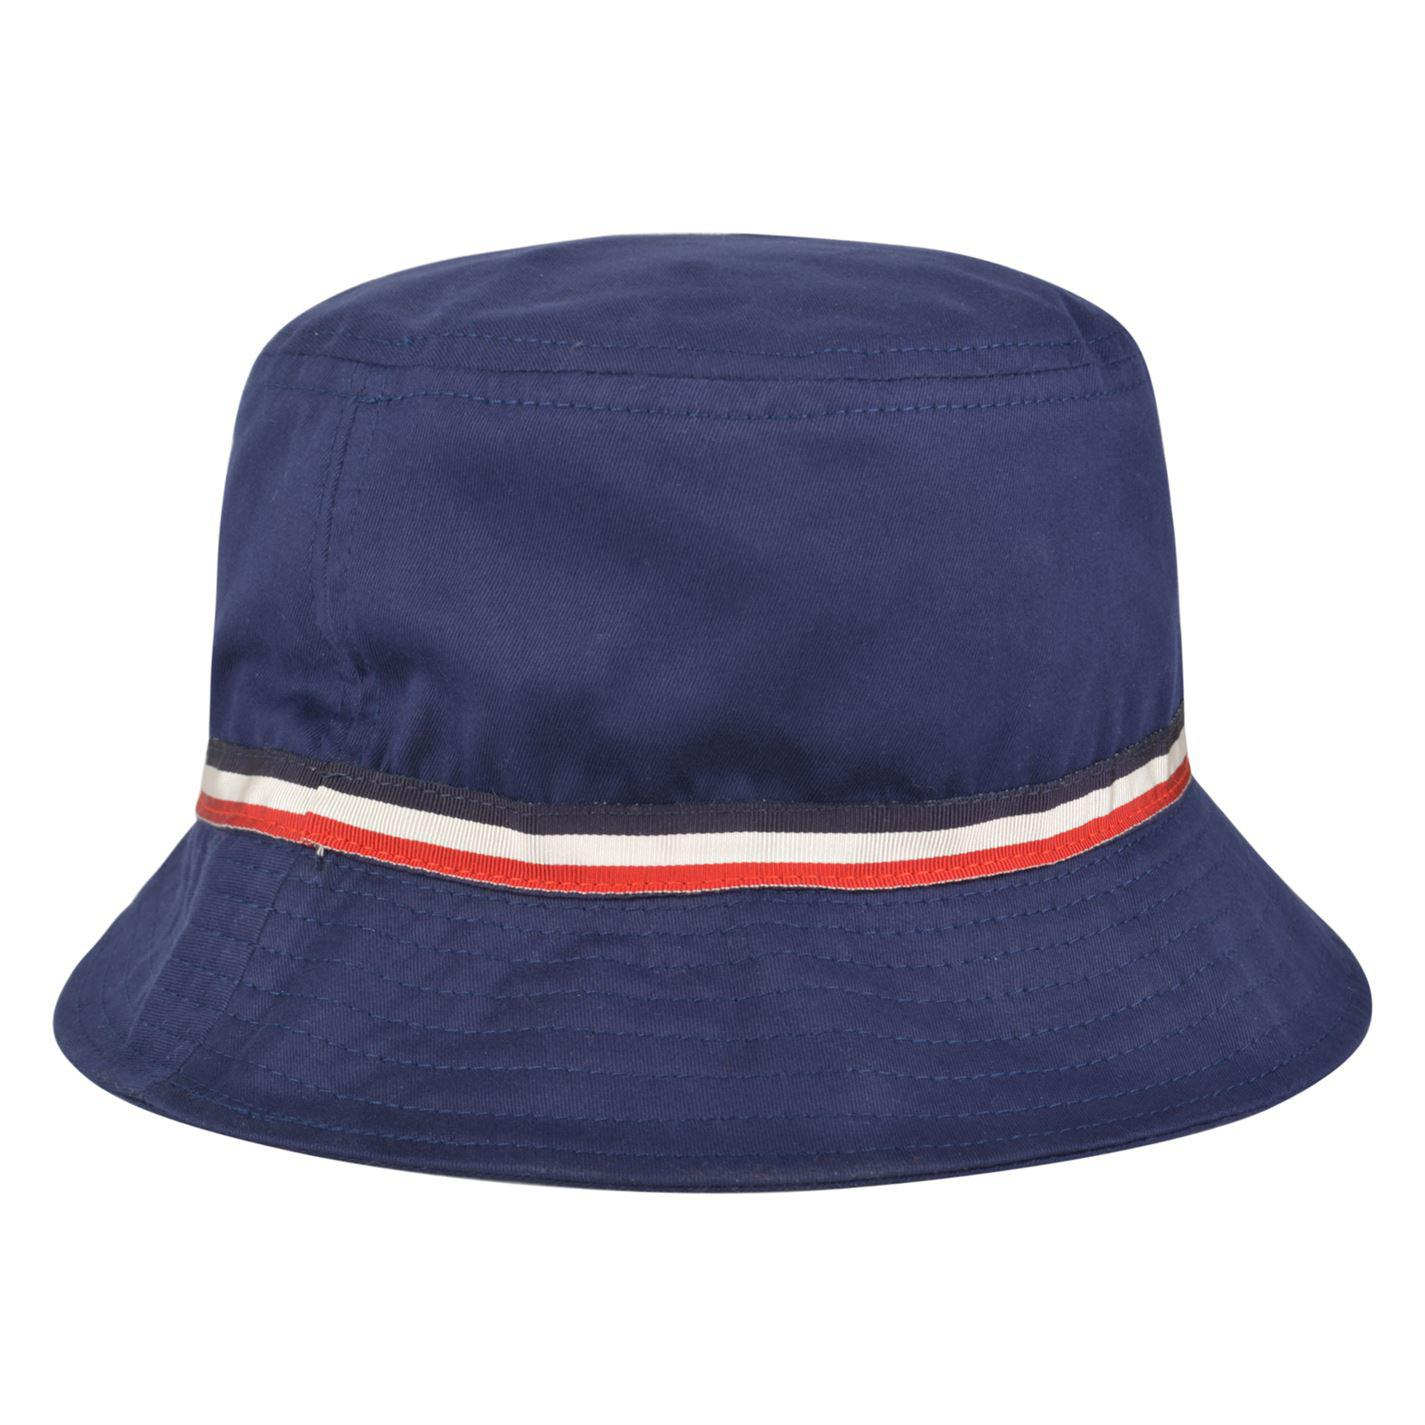 7775ccc5bc7 Lyst - Moncler Stripe Trim Bucket Hat in Blue for Men